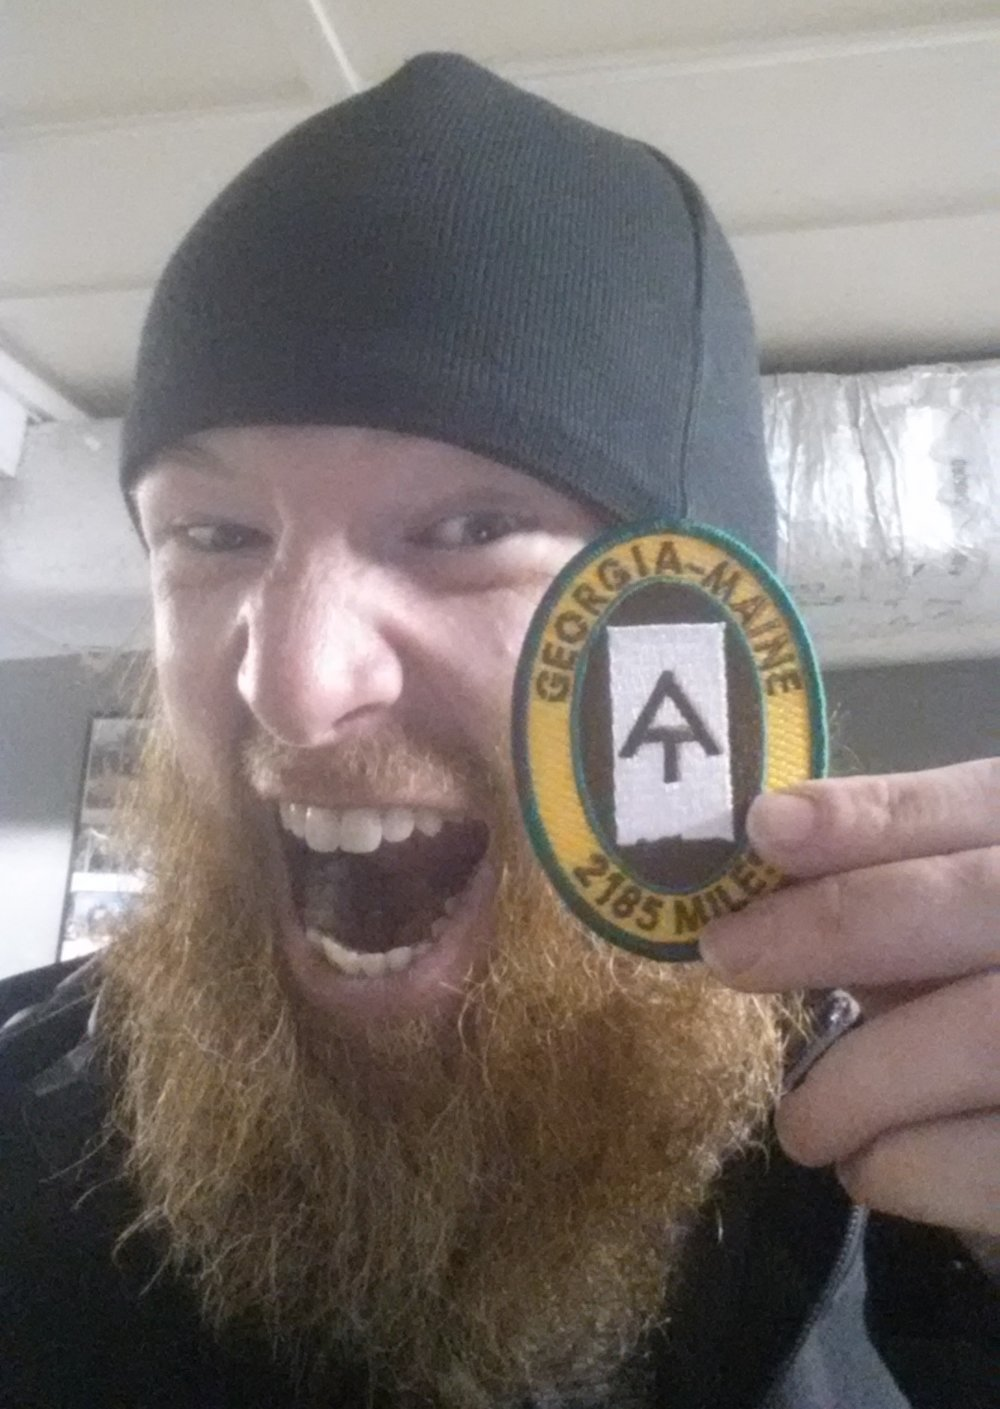 """After through-hiking 2,185 miles along the rugged Appalachian Trail of the East Coast, Chad """"Octo"""" Haynes makes it to Georgia and earns his patch and a place in the trail book."""